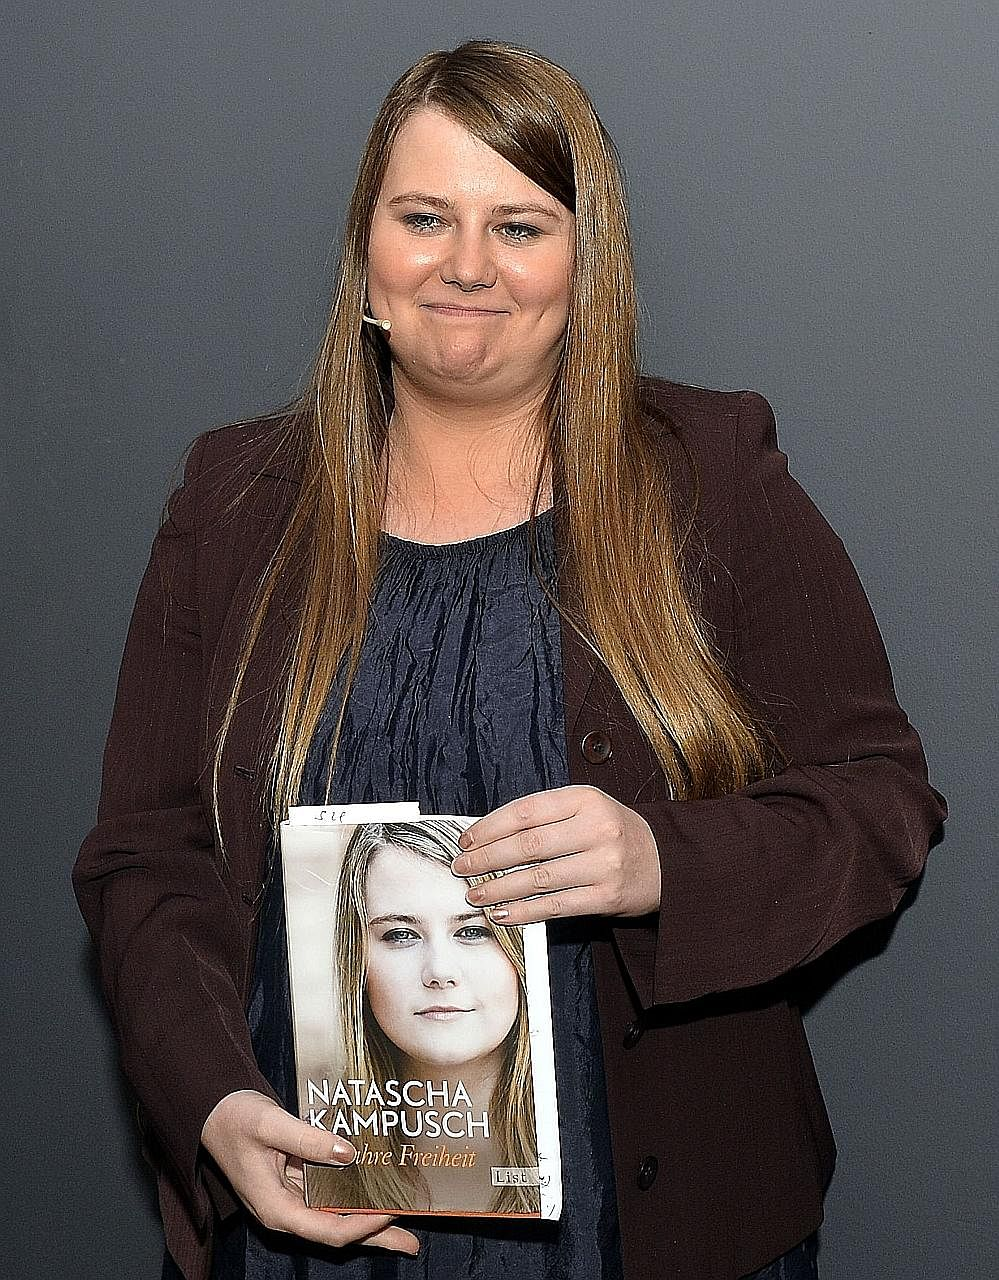 Ms Kampusch during the presentation of her new book 10 Jahre Freiheit (10 Years' Freedom) on Aug 17, marking the 10th a